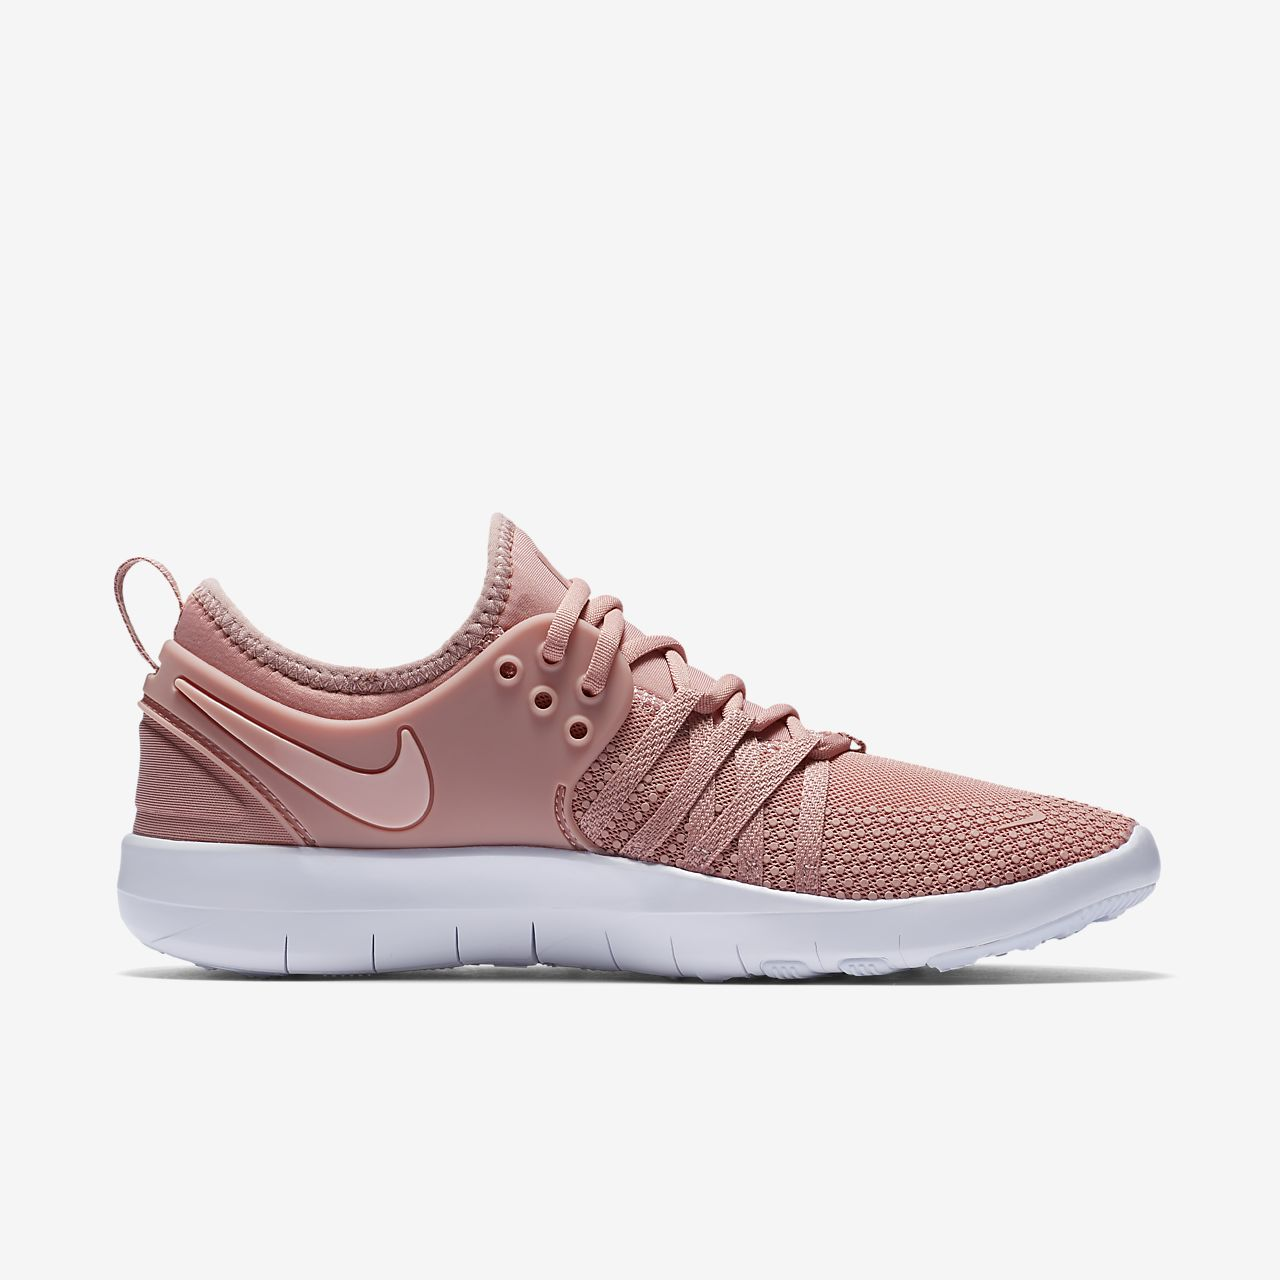 Nike Womens Shoes   Nike Sneakers Online at Best Prices ... cd362715f06